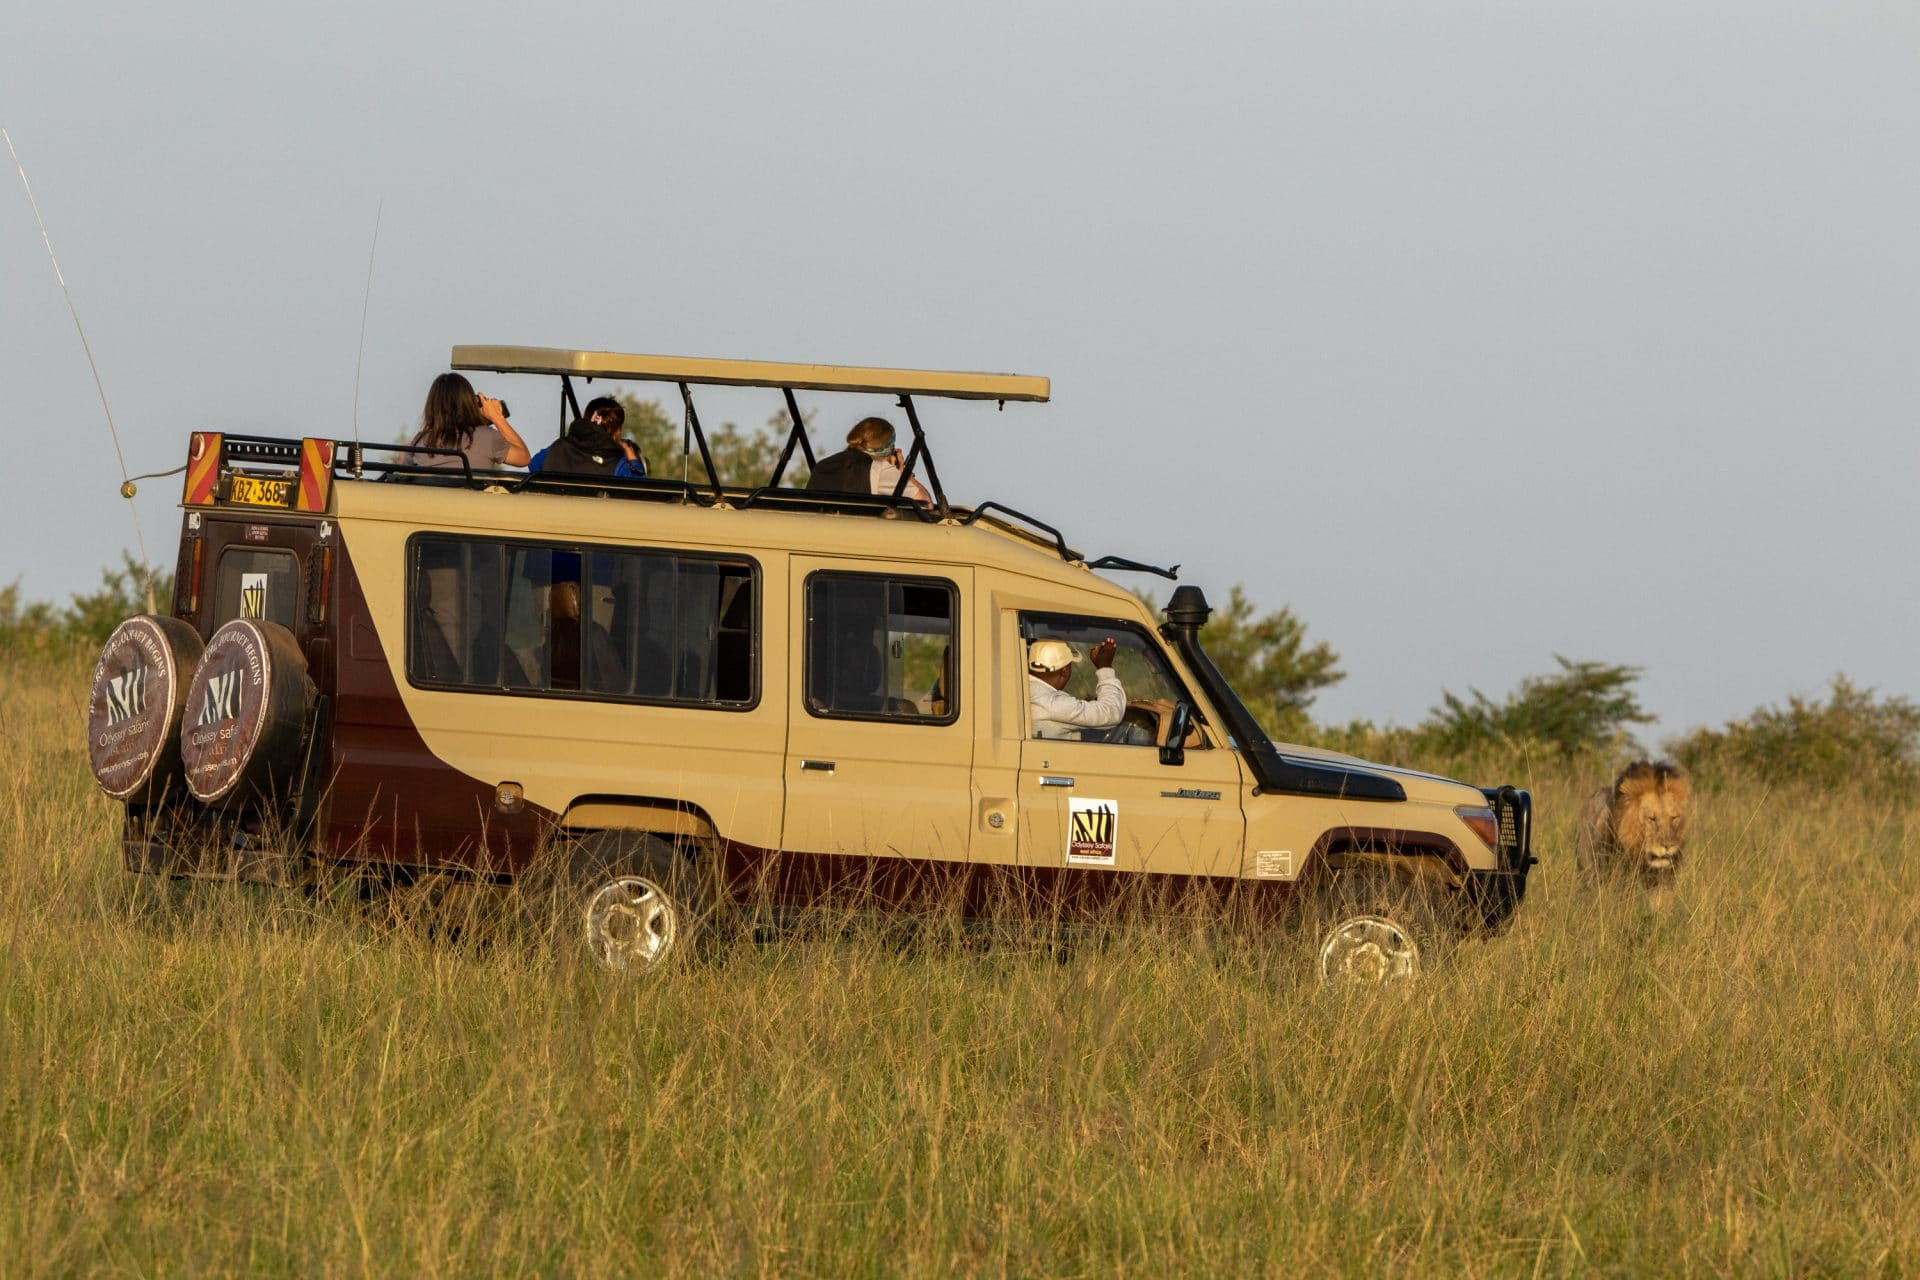 Where Do I Start? The Beginner's Travel Guide To Exploring Tanzania